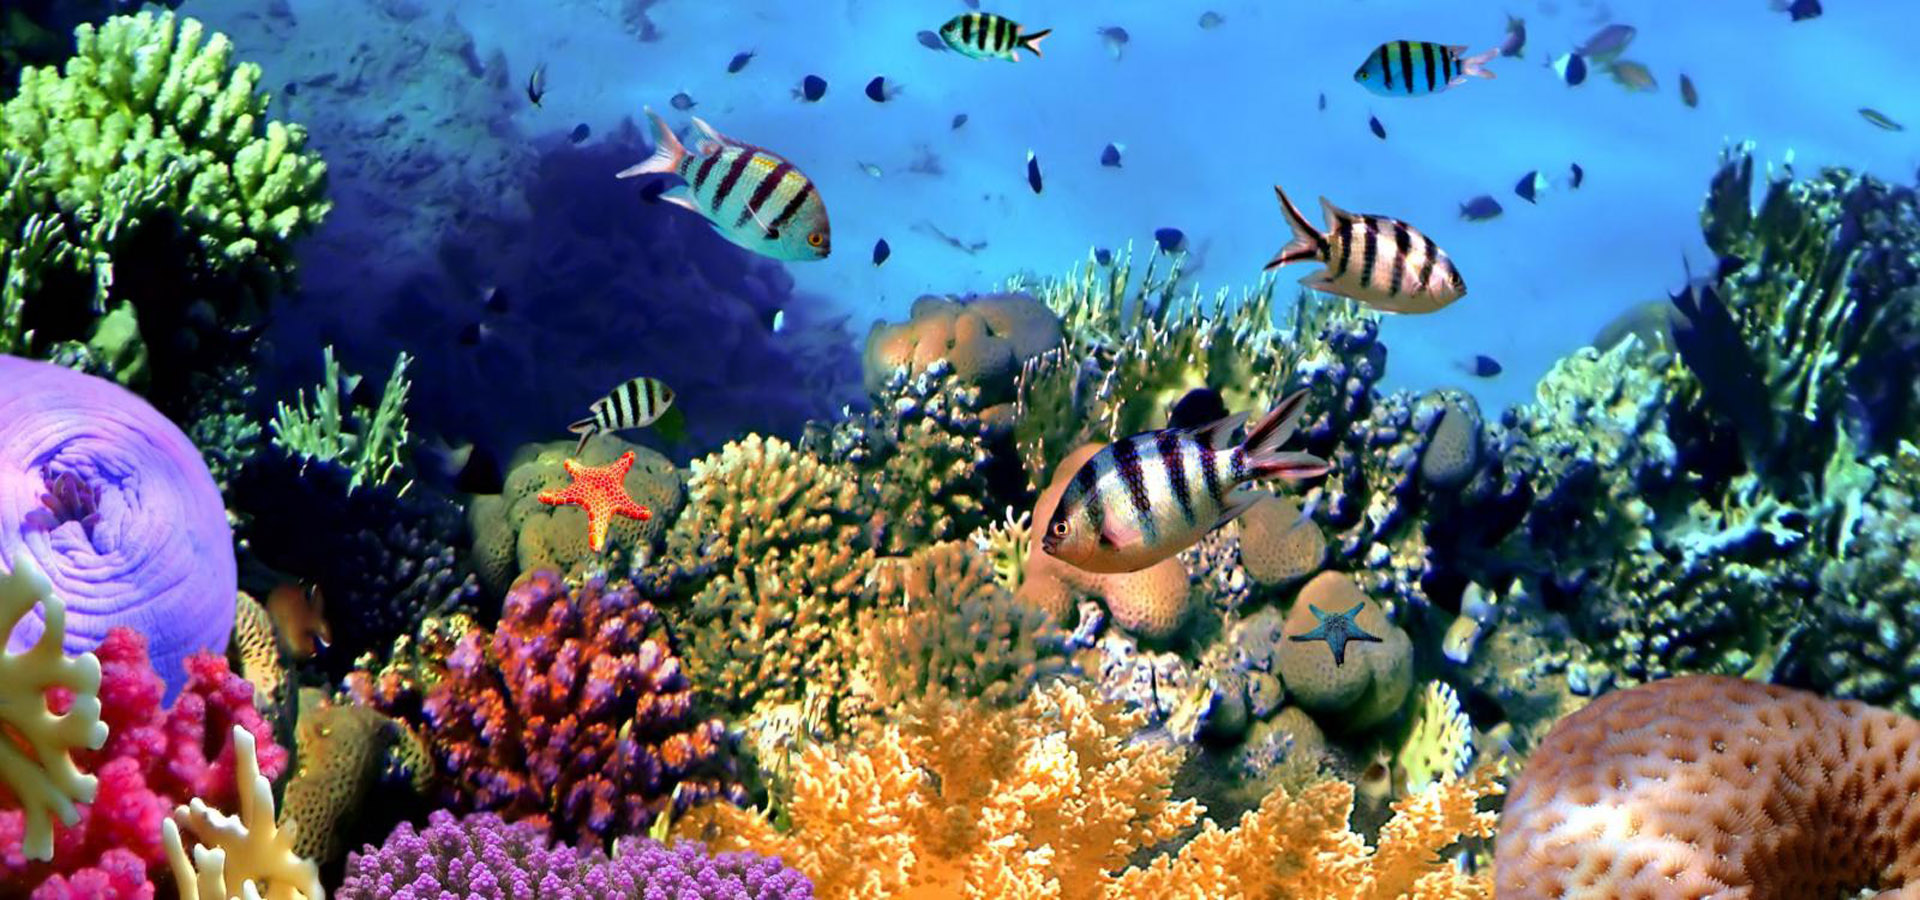 Red Sea Fish & Coral Reefs